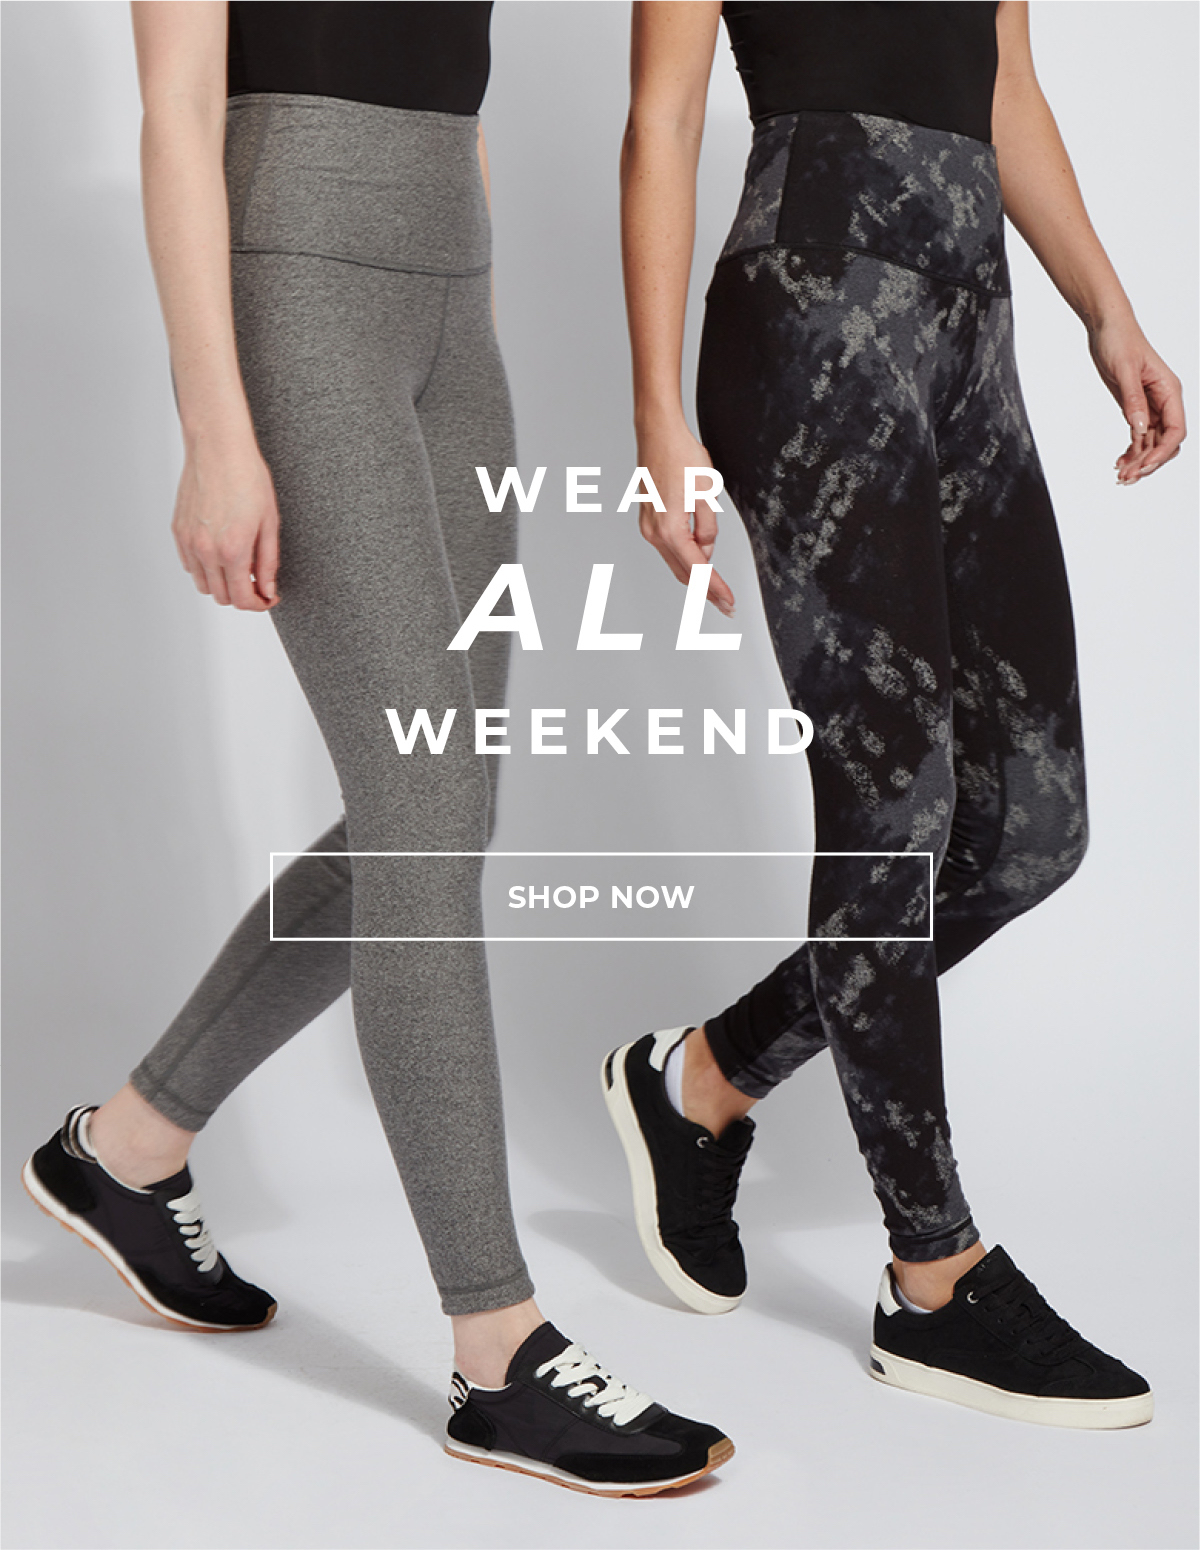 Wear All Weekend - The Reversible Cotton Legging Printed